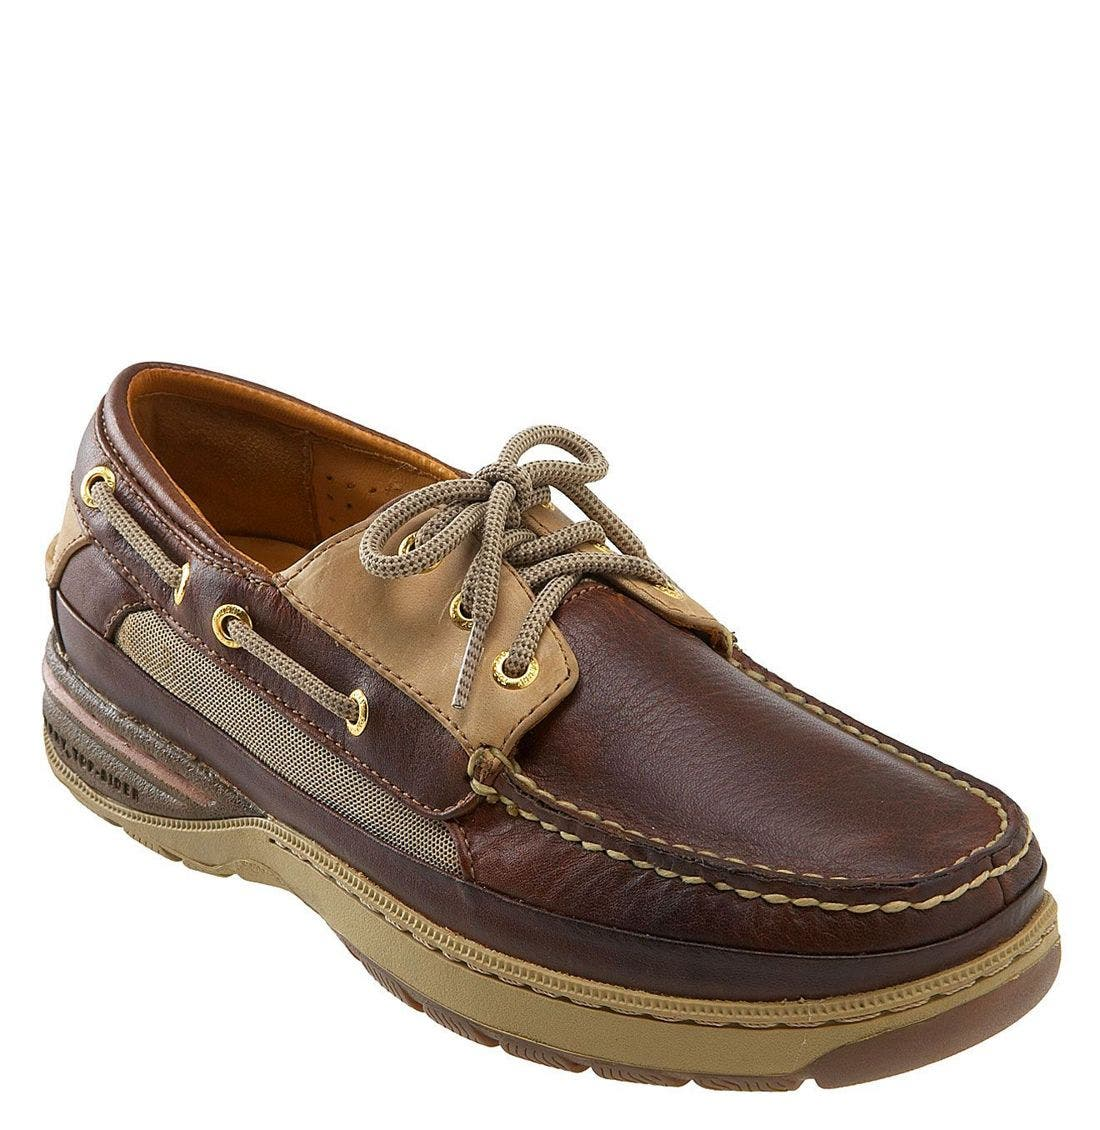 Main Image - Sperry 'Gold Billfish 3-Eye' Boat Shoe